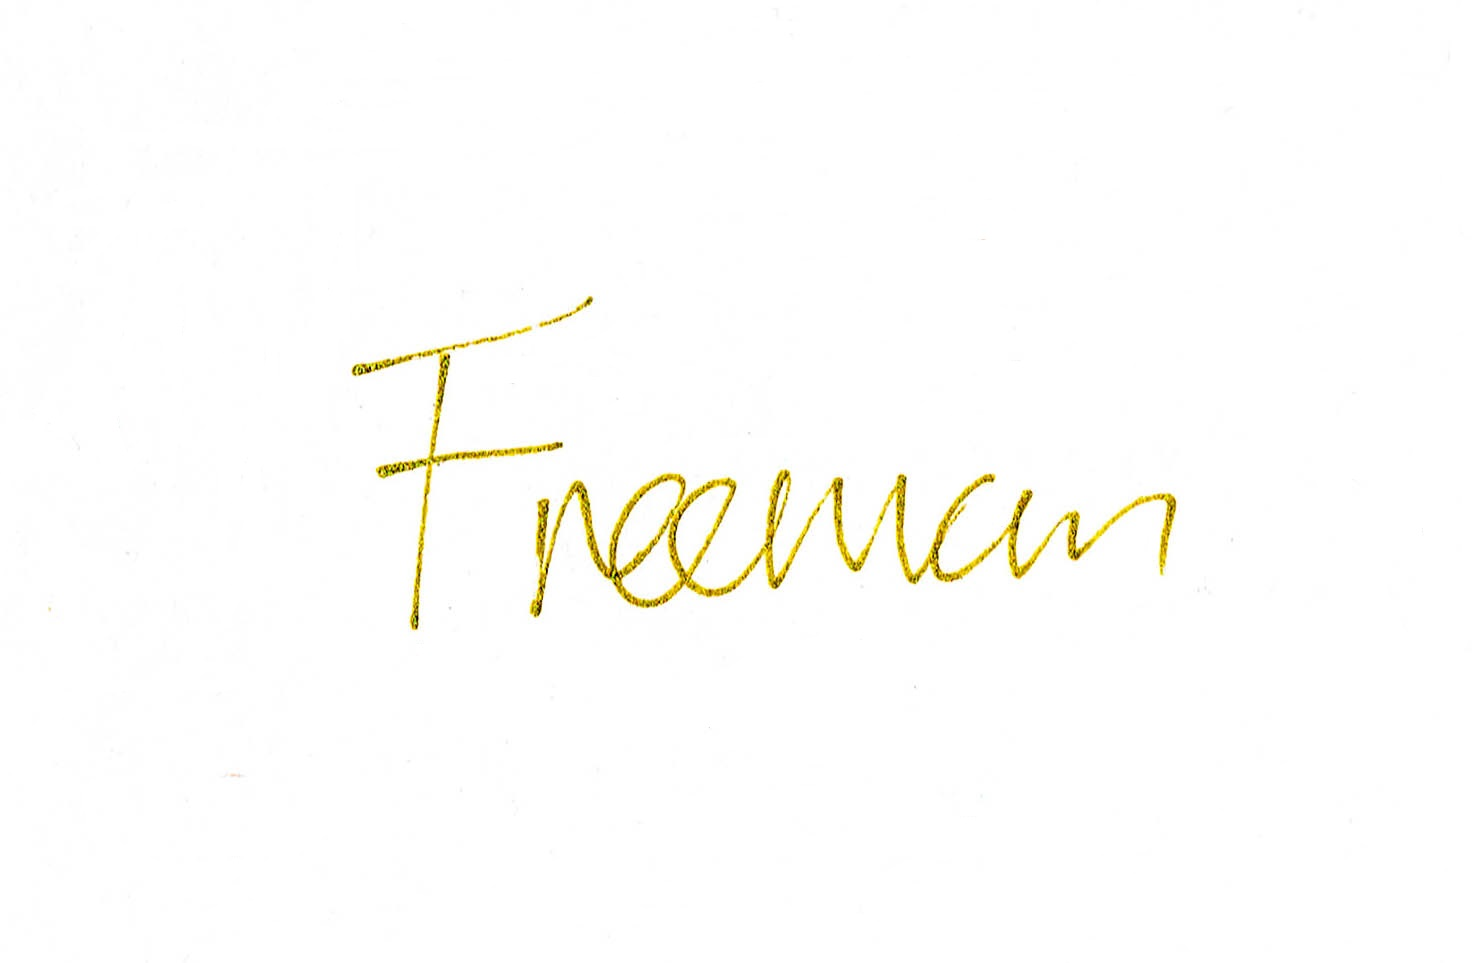 Freeman uk Signature